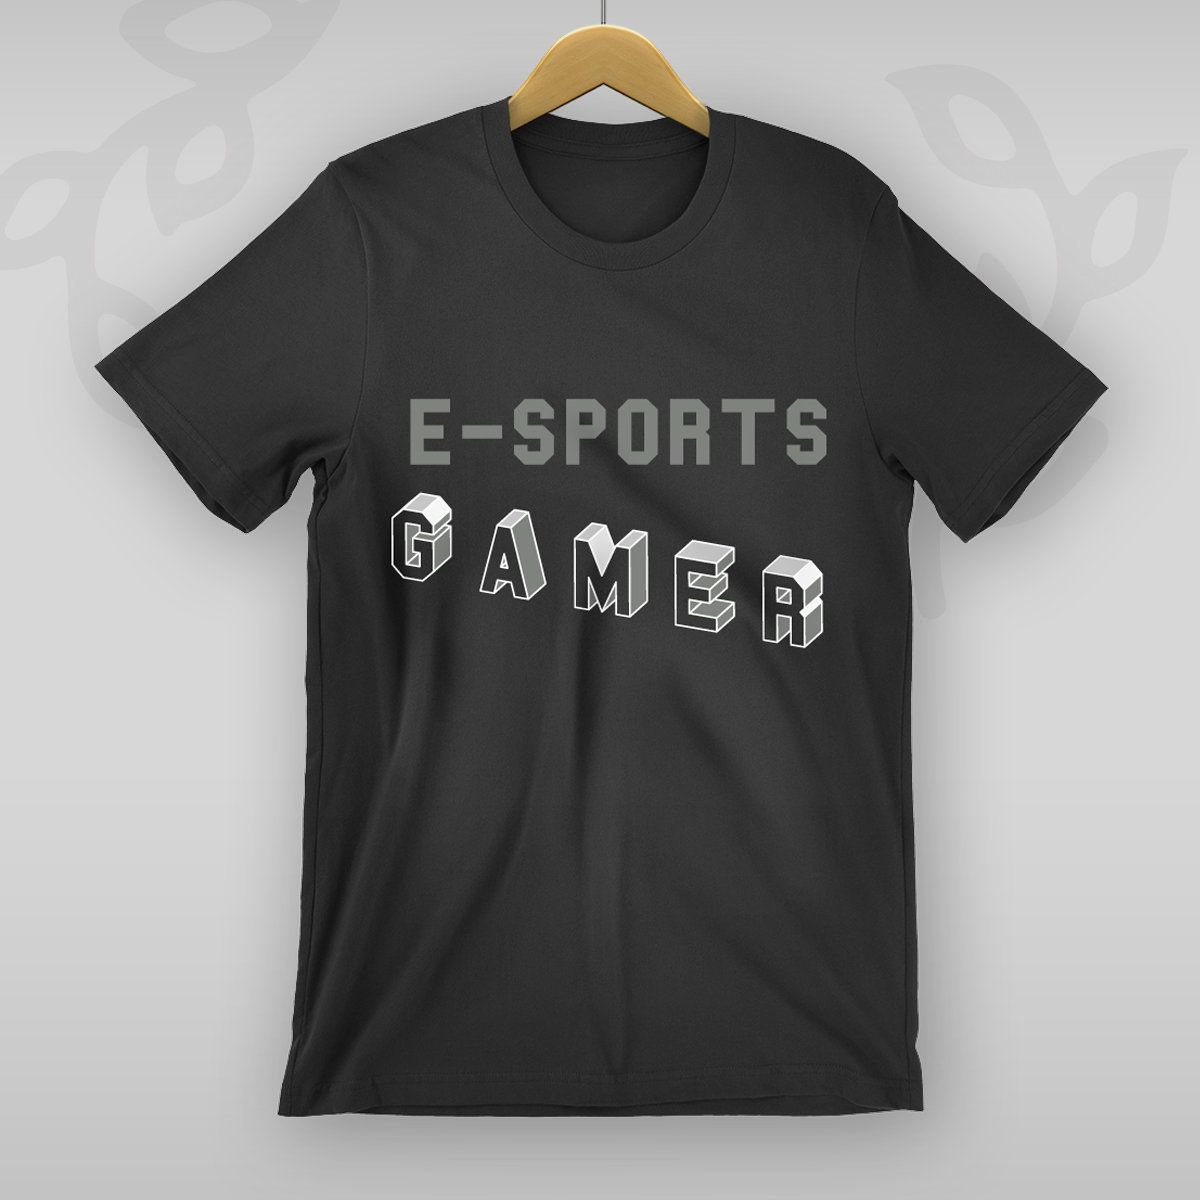 Gamer Gift Esports Shirt For Dad Husband Party Video Game Birthday By PartyBrew On Etsy